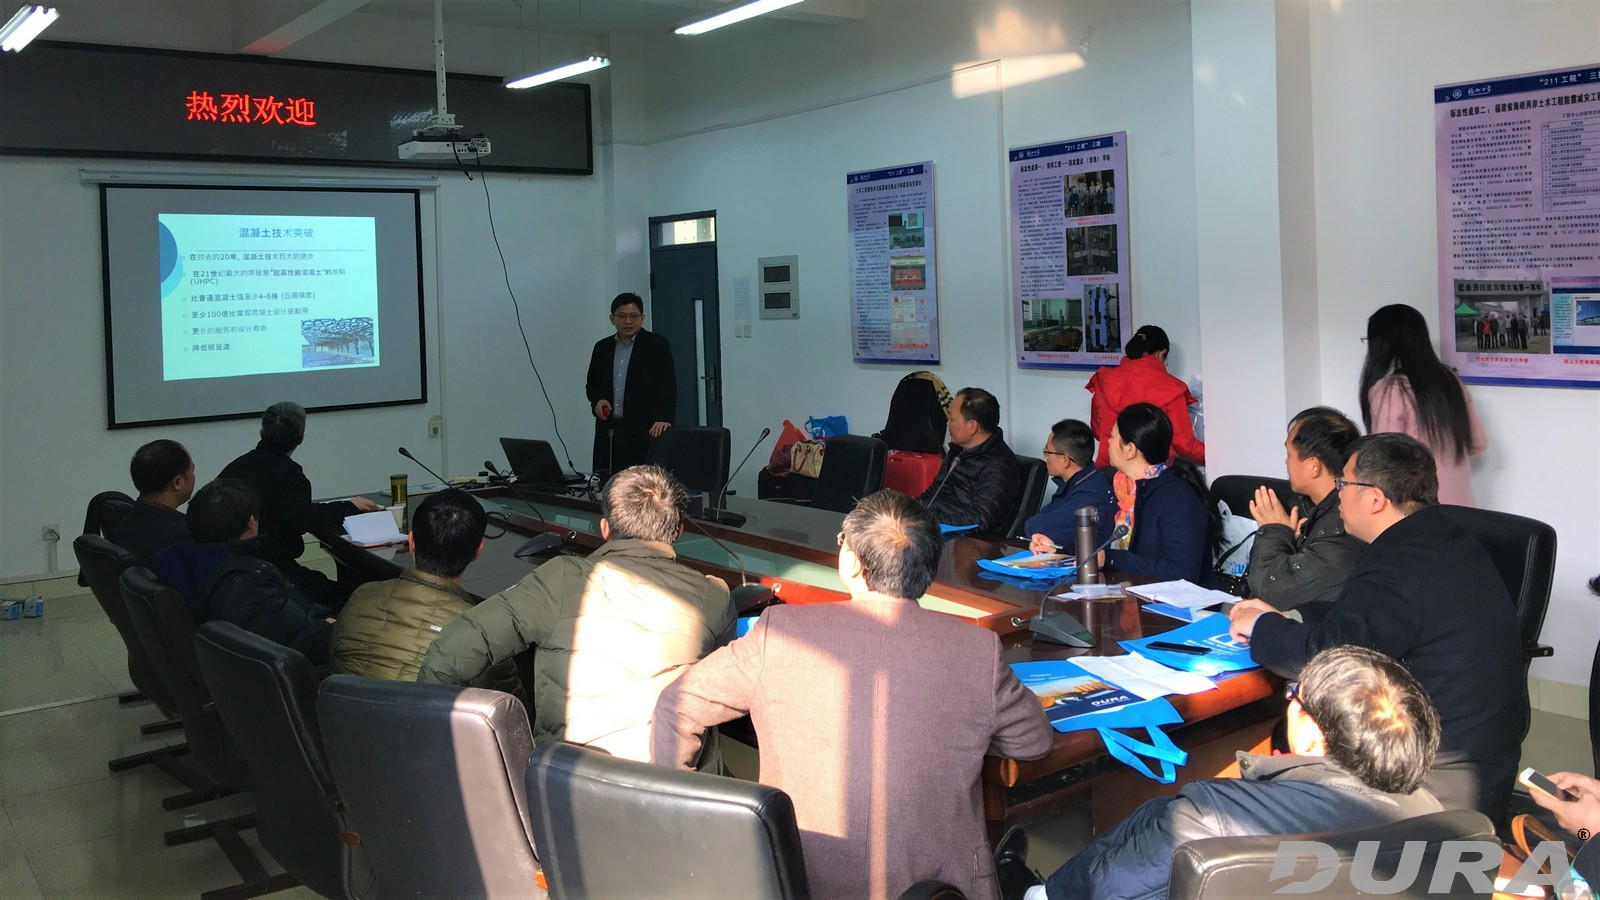 Presentation at School of Civil Engineering, Fuzhuo University by Dr Voo, Dura.